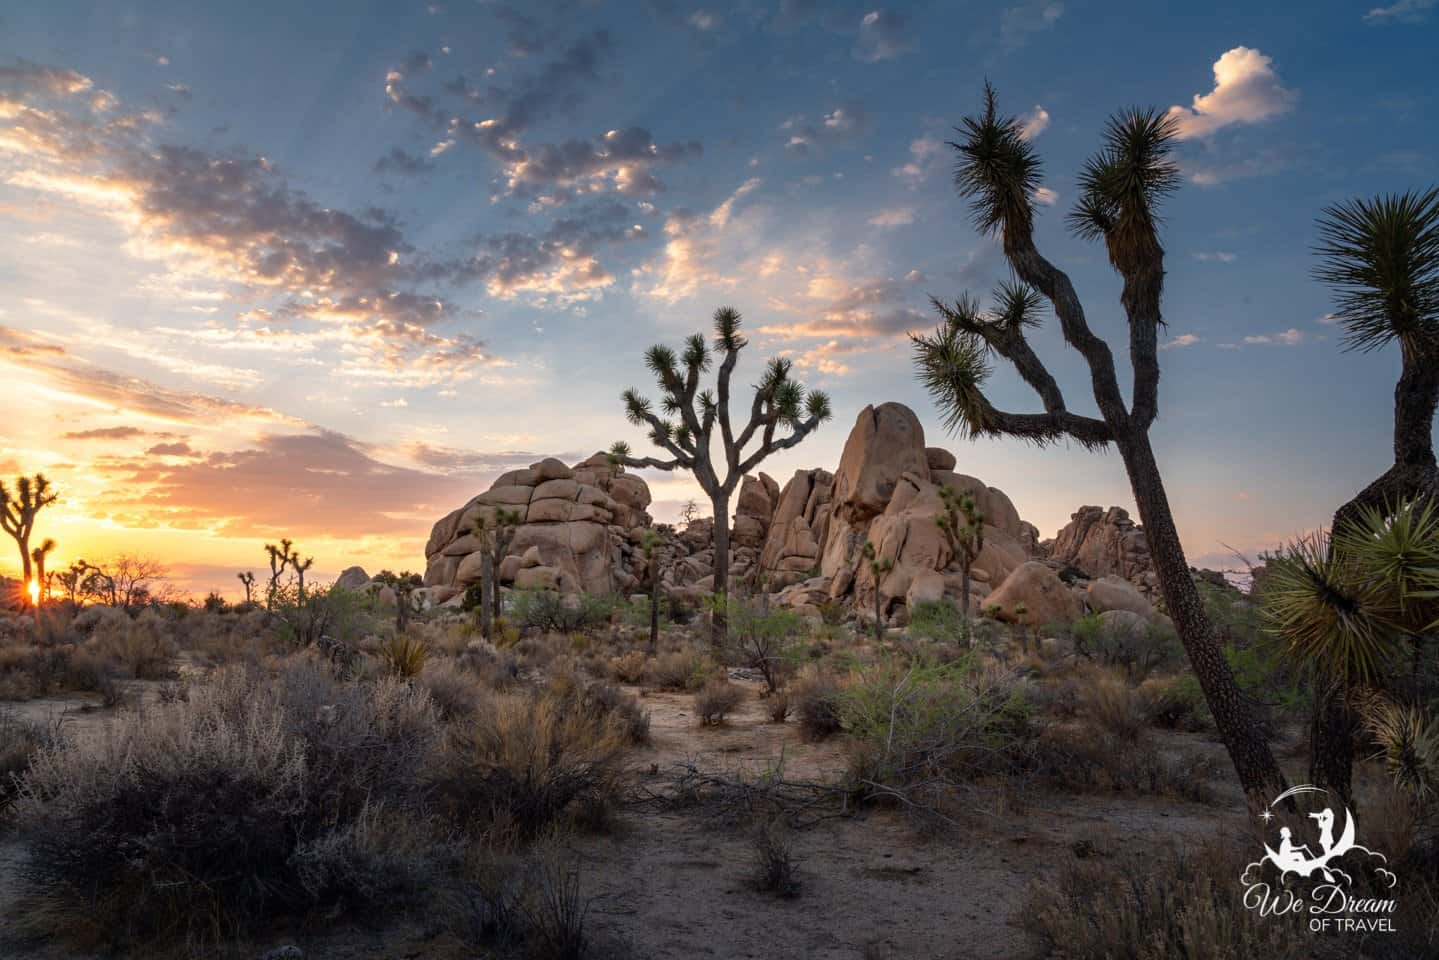 The colors of dusk decorate the sky in this sunset picture of Joshua Trees in Hidden Valley.